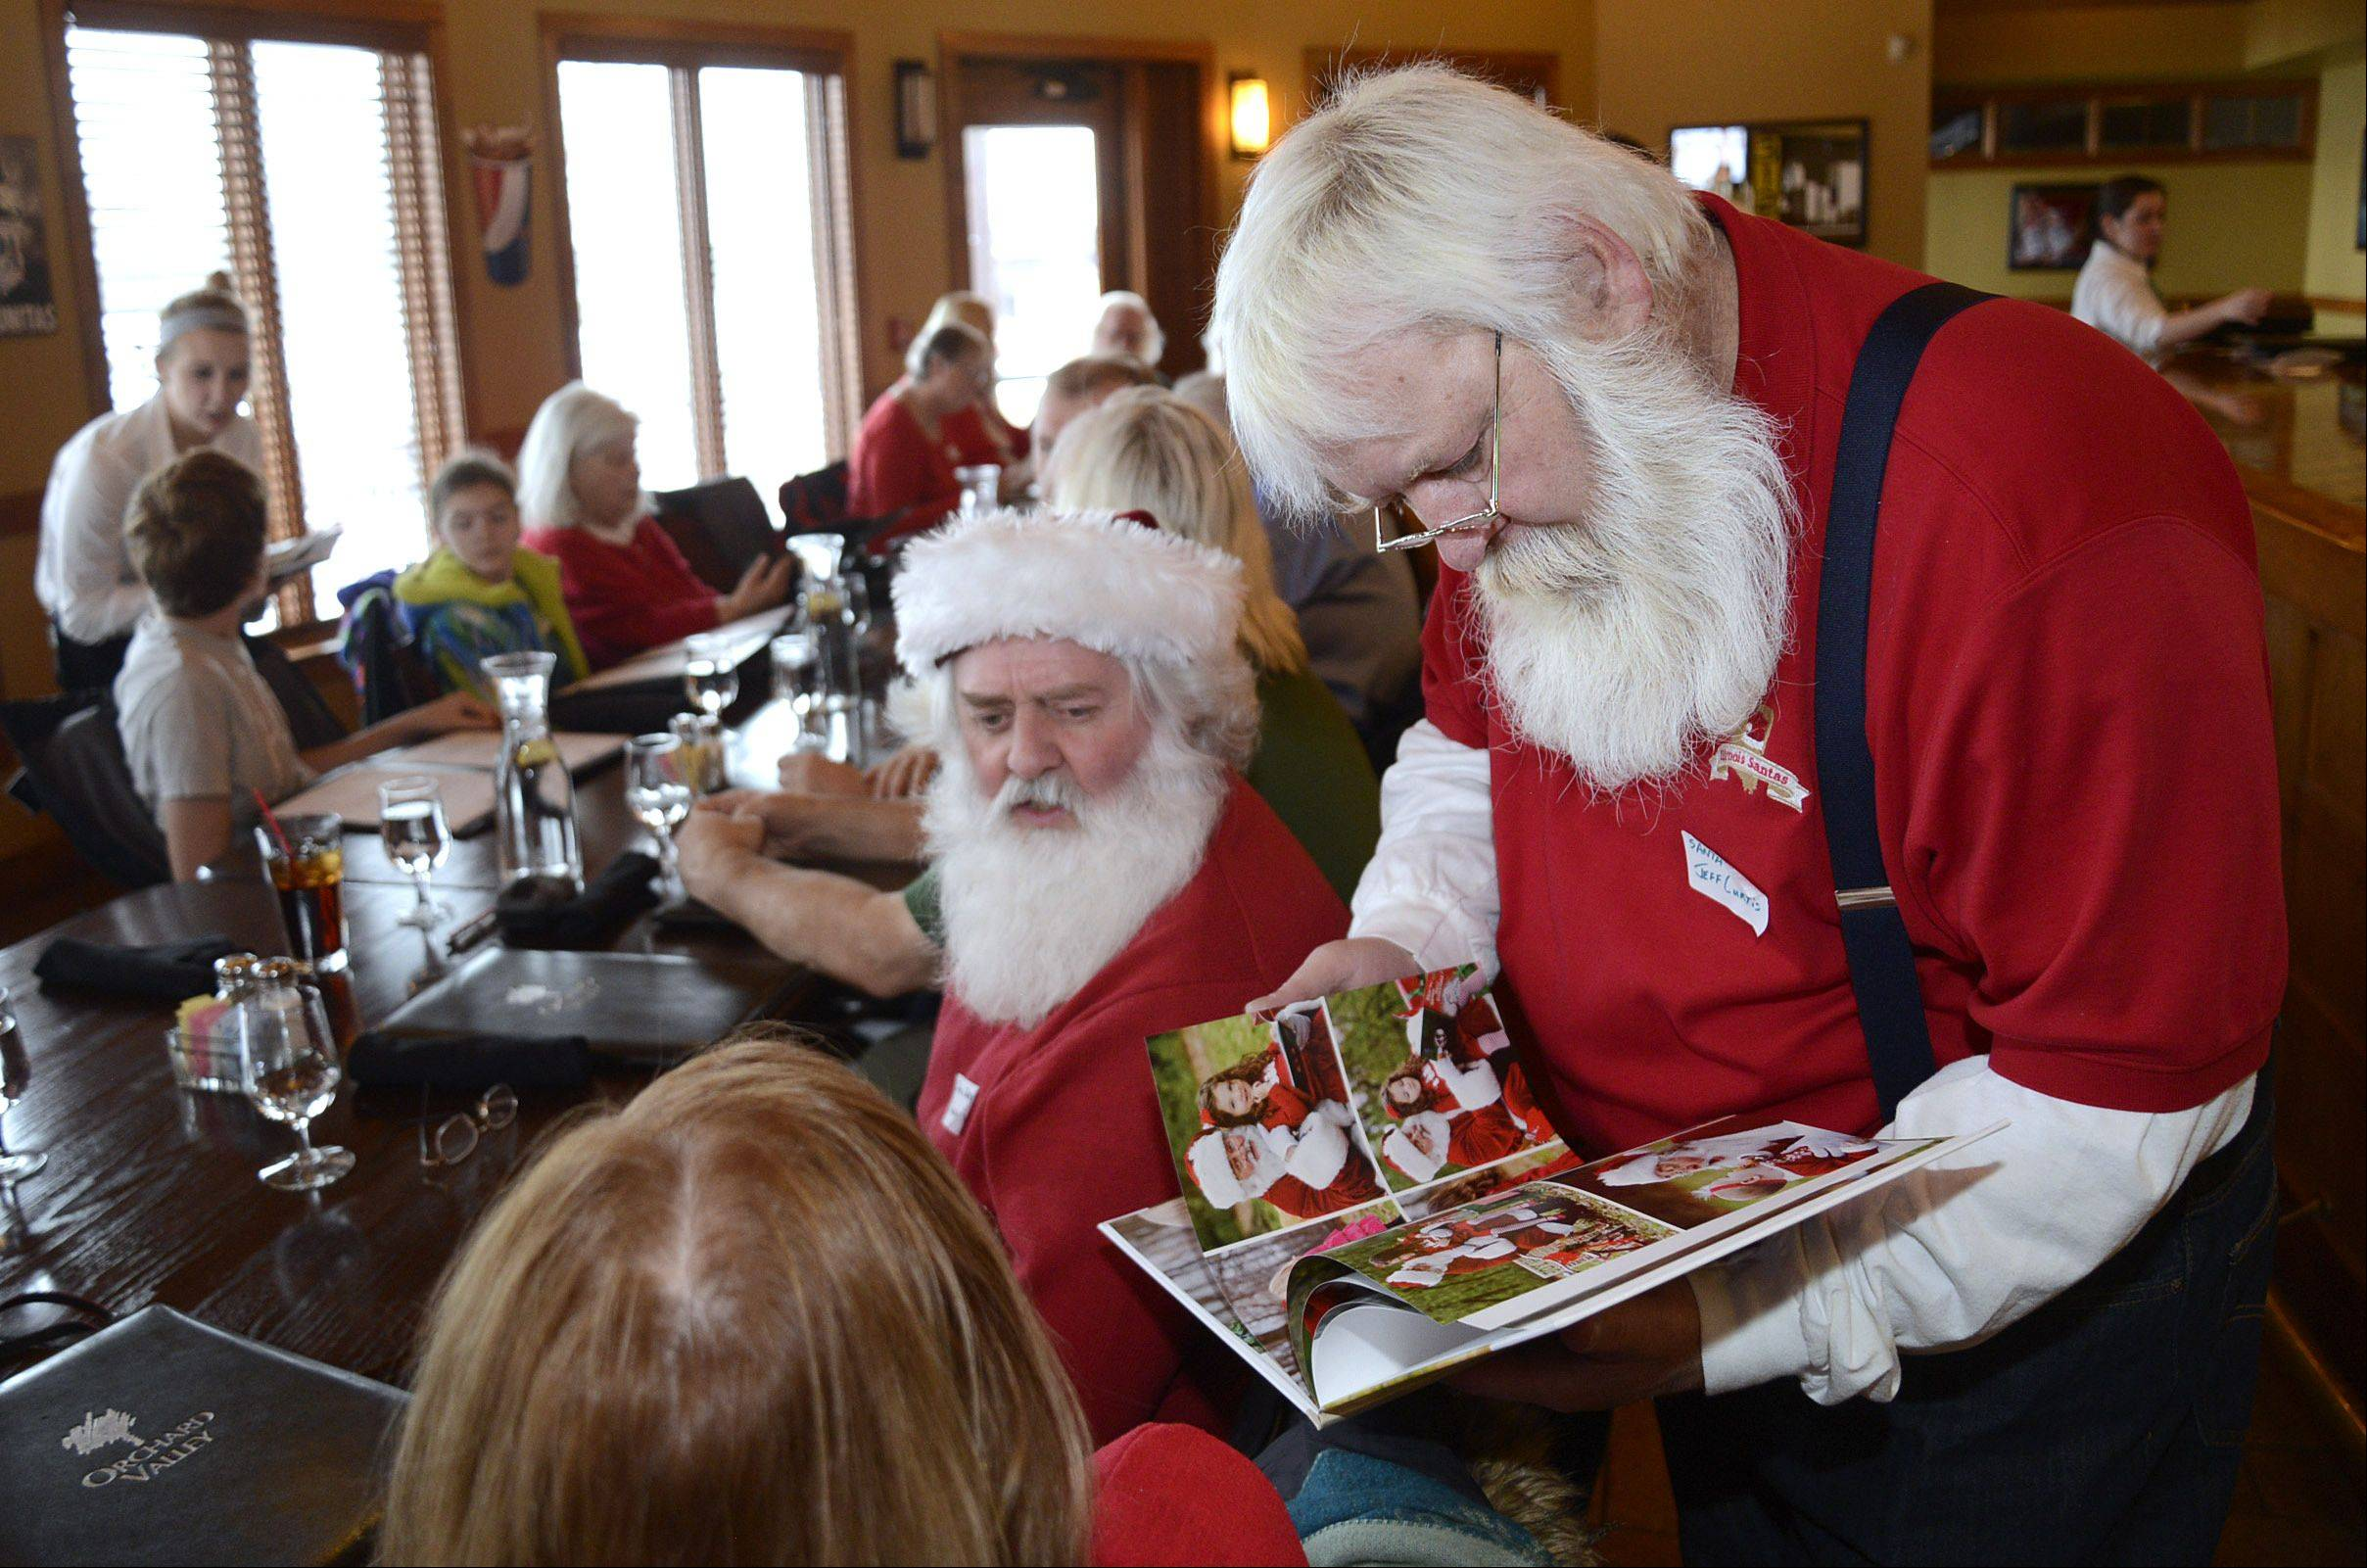 Jeff Curtis of Bartlett looks through the photo collage book of fellow Santa Sean Callaghan of Chicago, seated, during a gathering of Illinois Santas and Mrs. Santas Saturday in Aurora. Curtis has been a Santa for 15 years and Callaghan has been doing it three years.